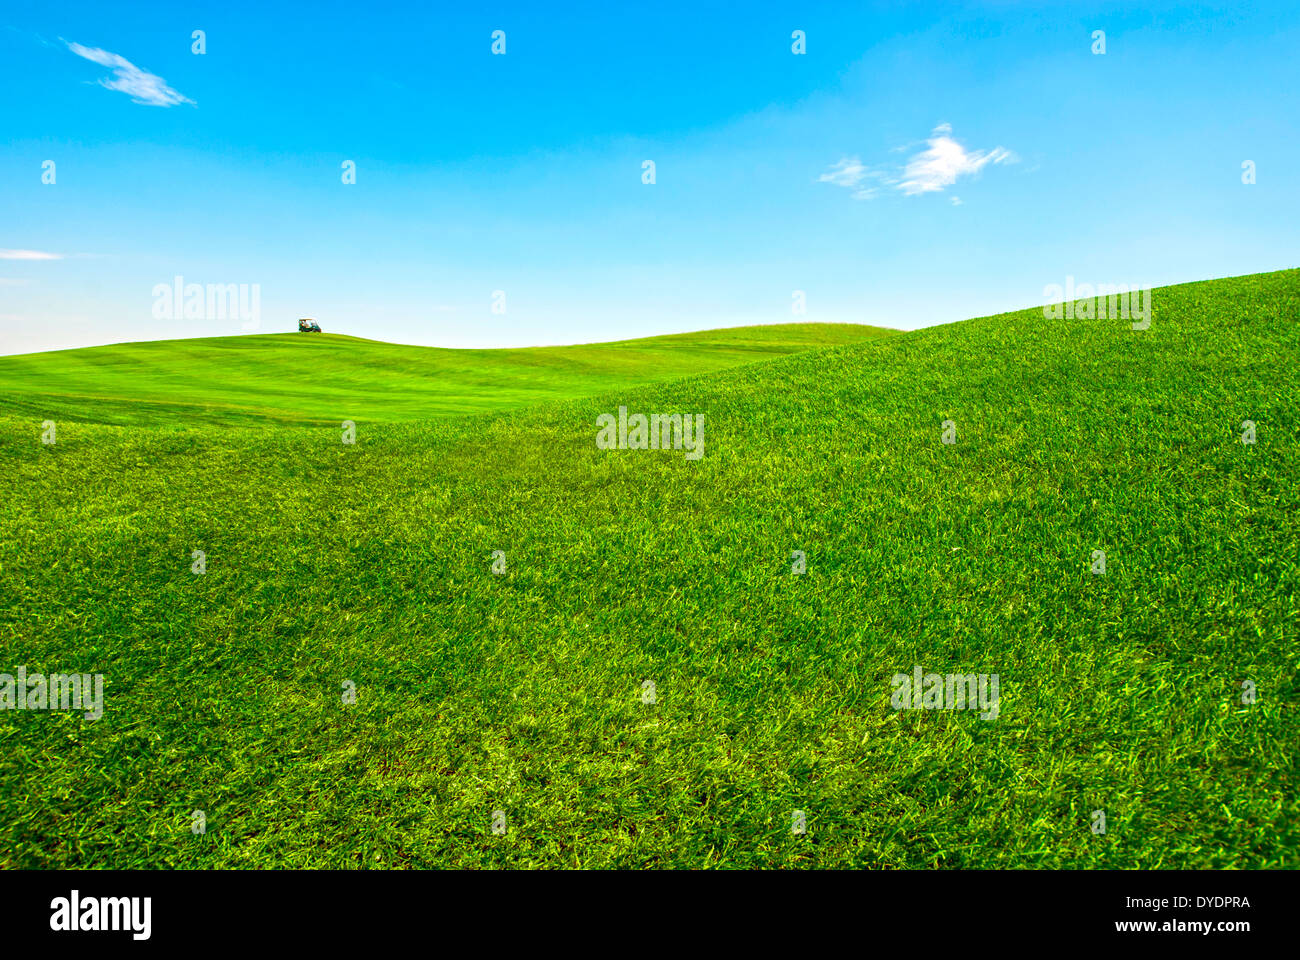 Golf course on a very nice day, with a small golf cart - Stock Image